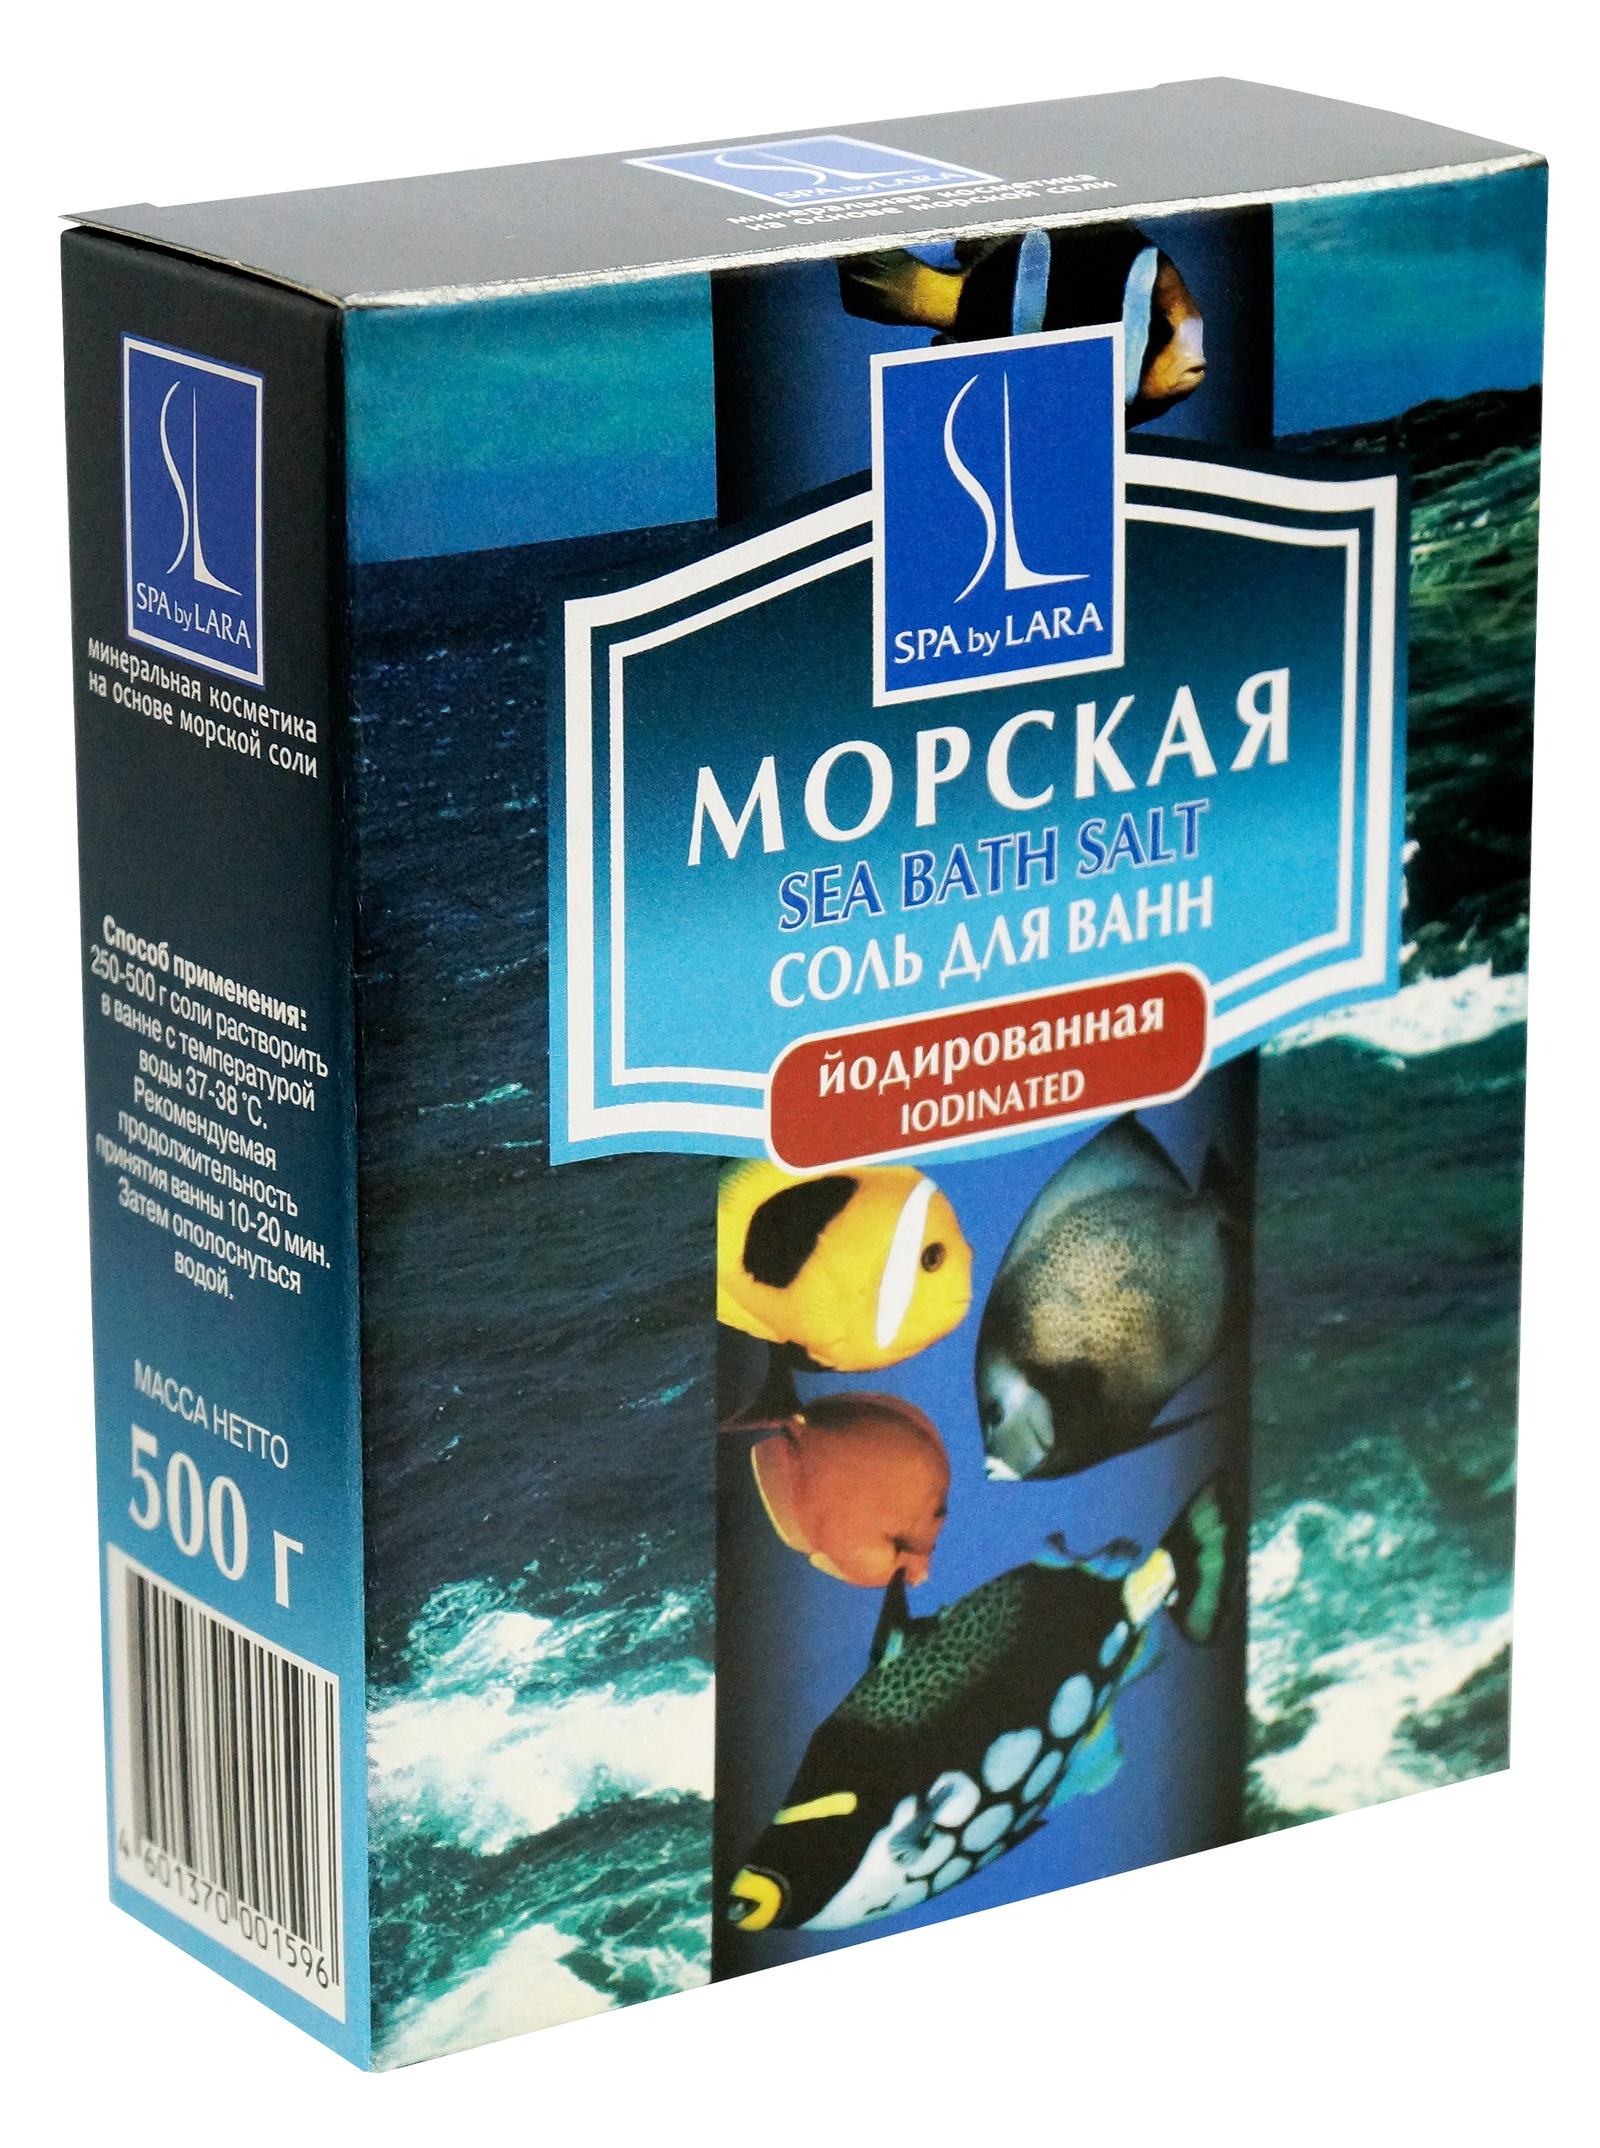 Соль морская Spa by Lara для ванн с микроэлементами (йодированная) 500г Spa by Lara